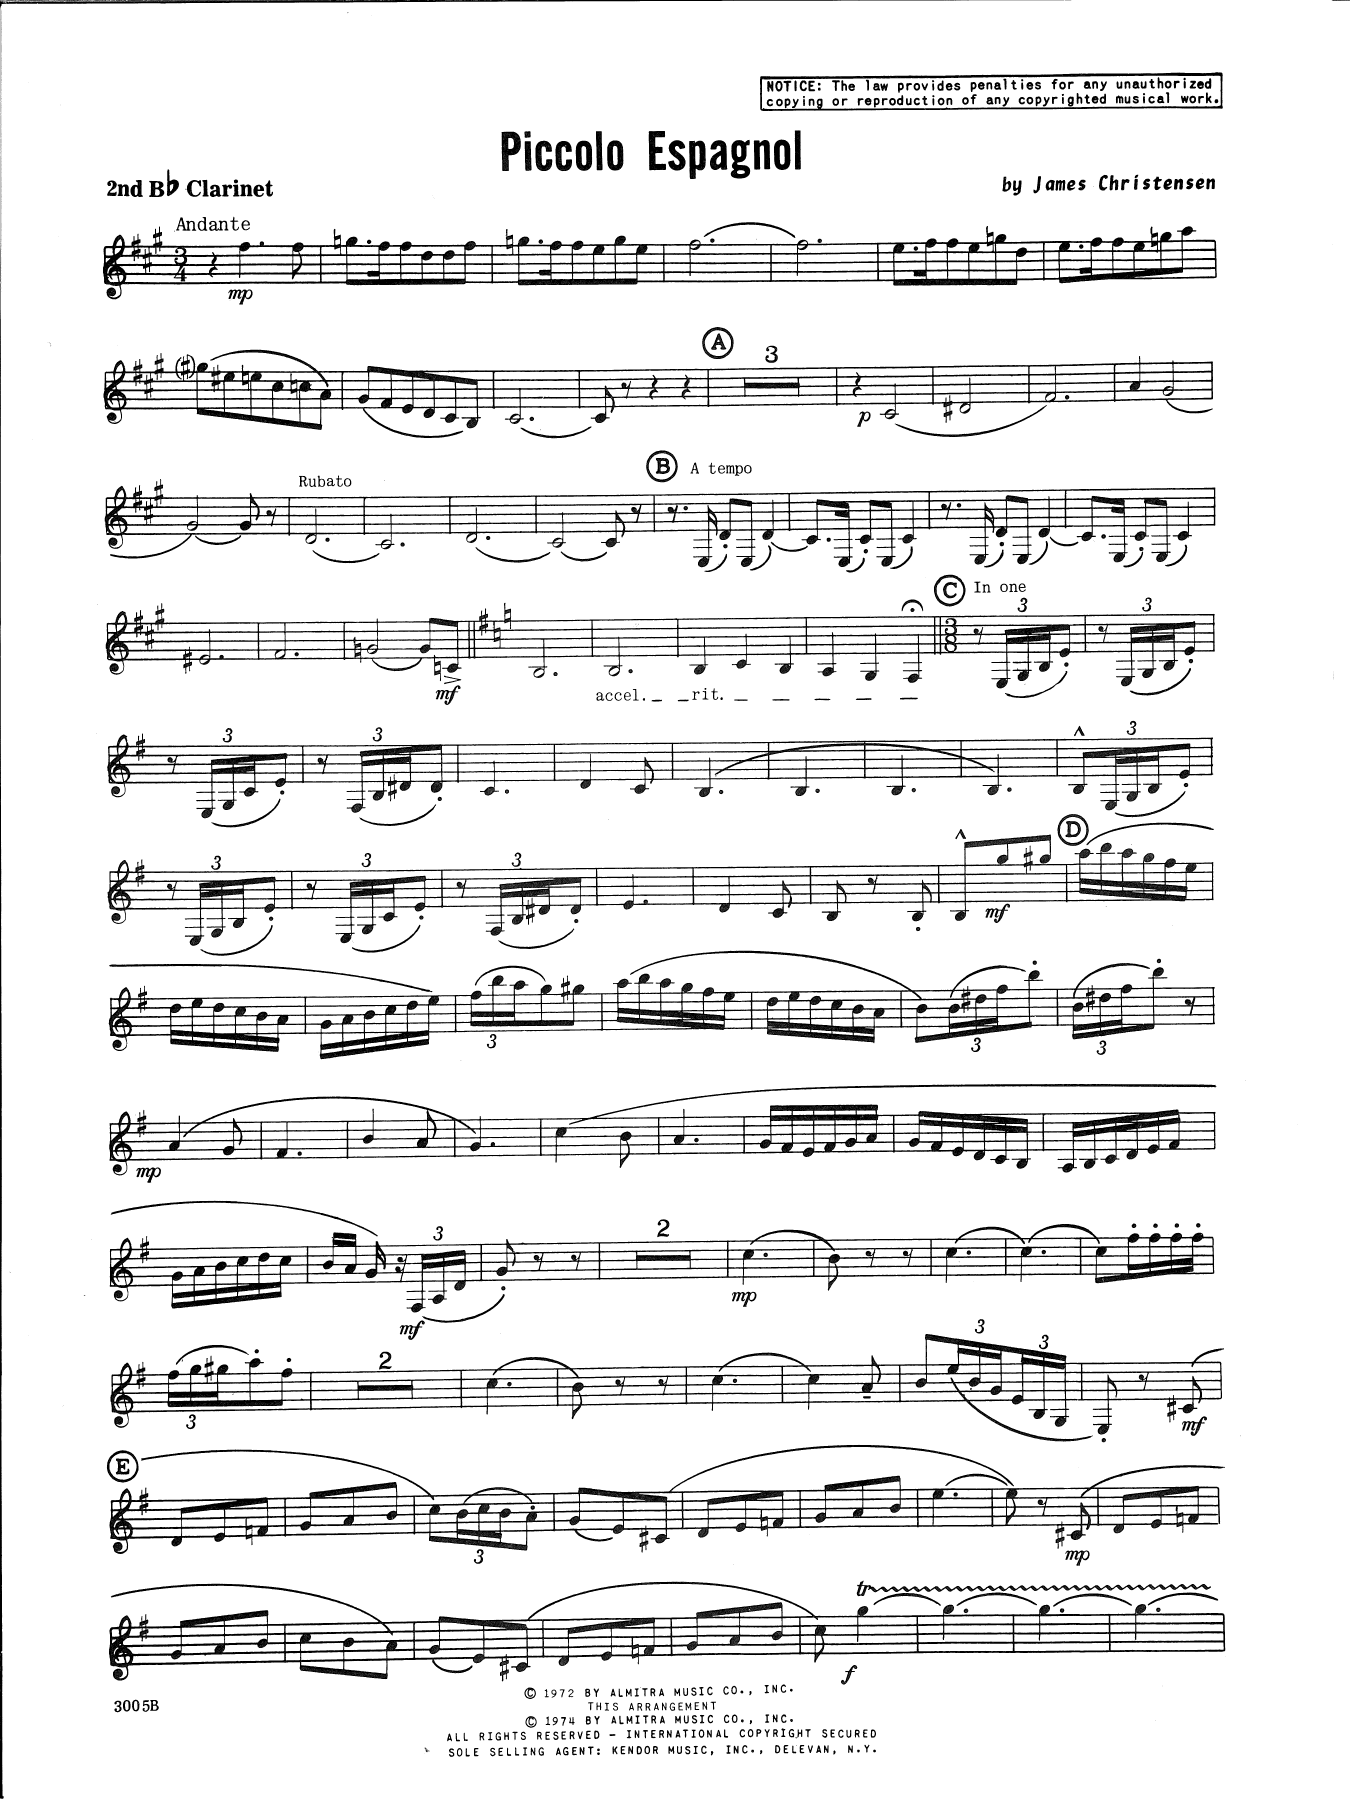 James Christensen Piccolo Espagnol - 2nd Bb Clarinet sheet music notes and chords. Download Printable PDF.